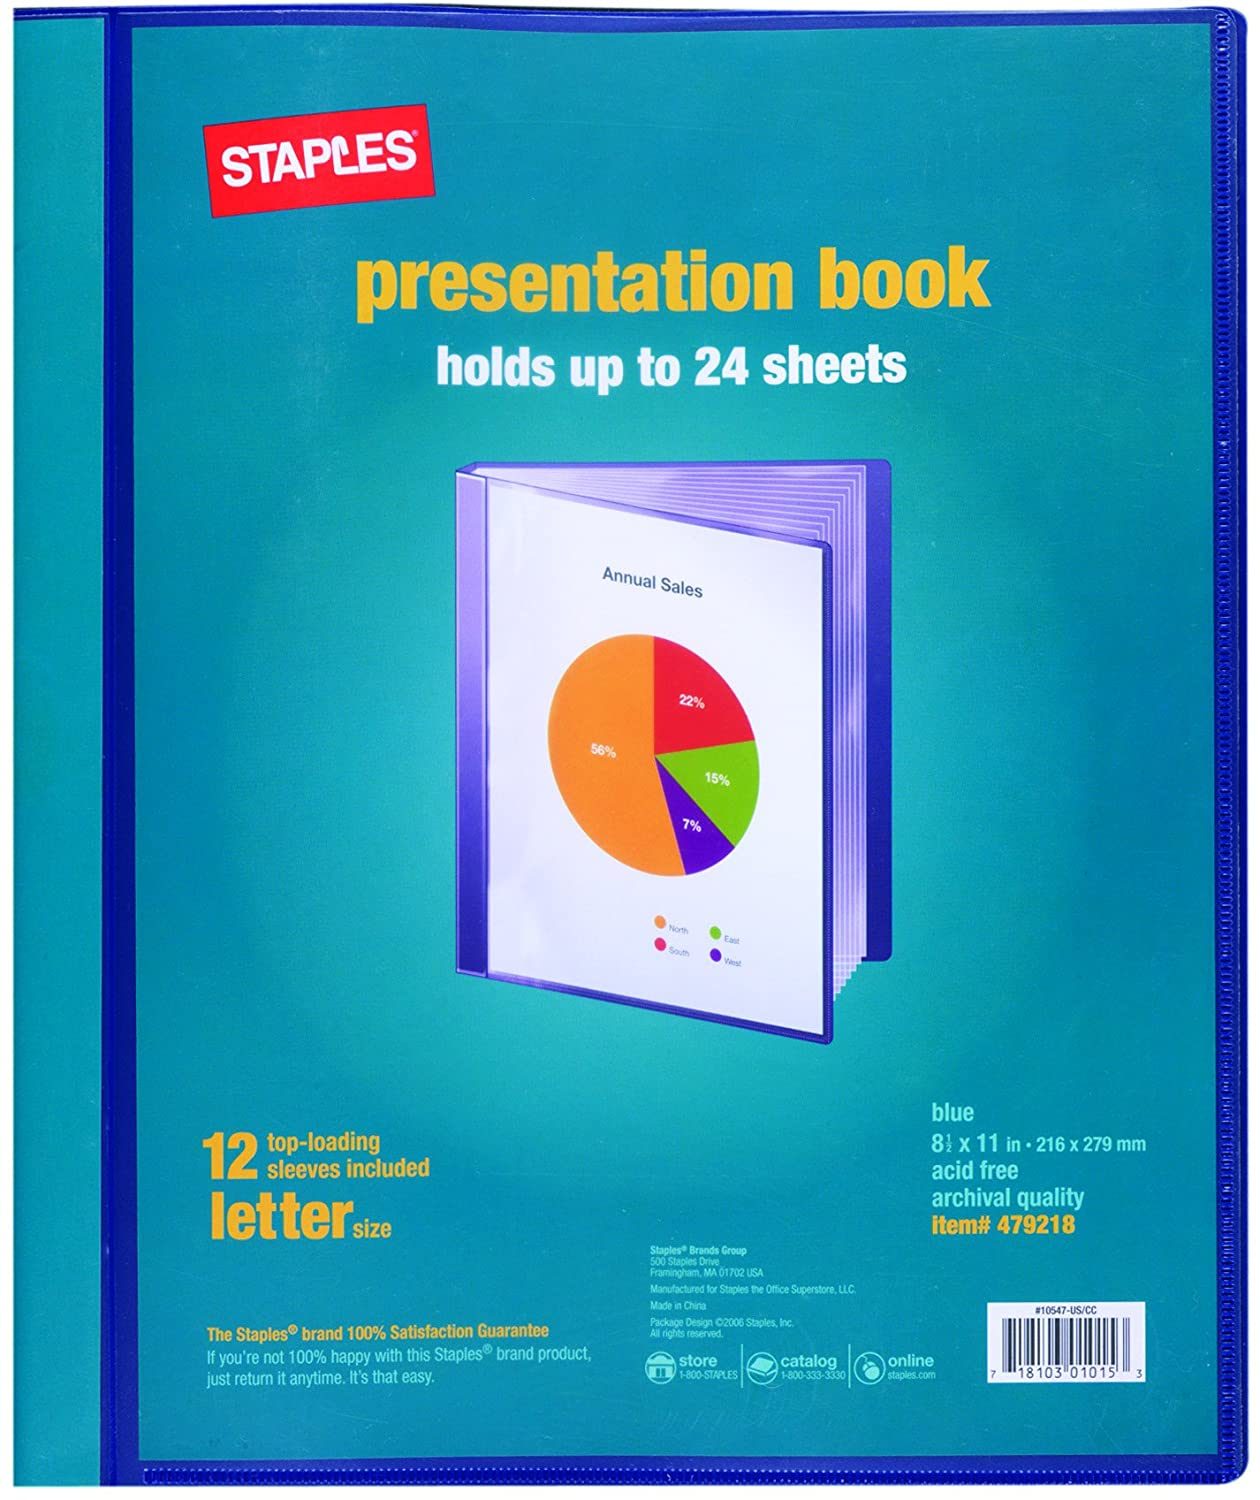 staples presentation book 12 individual sleeves 50 off